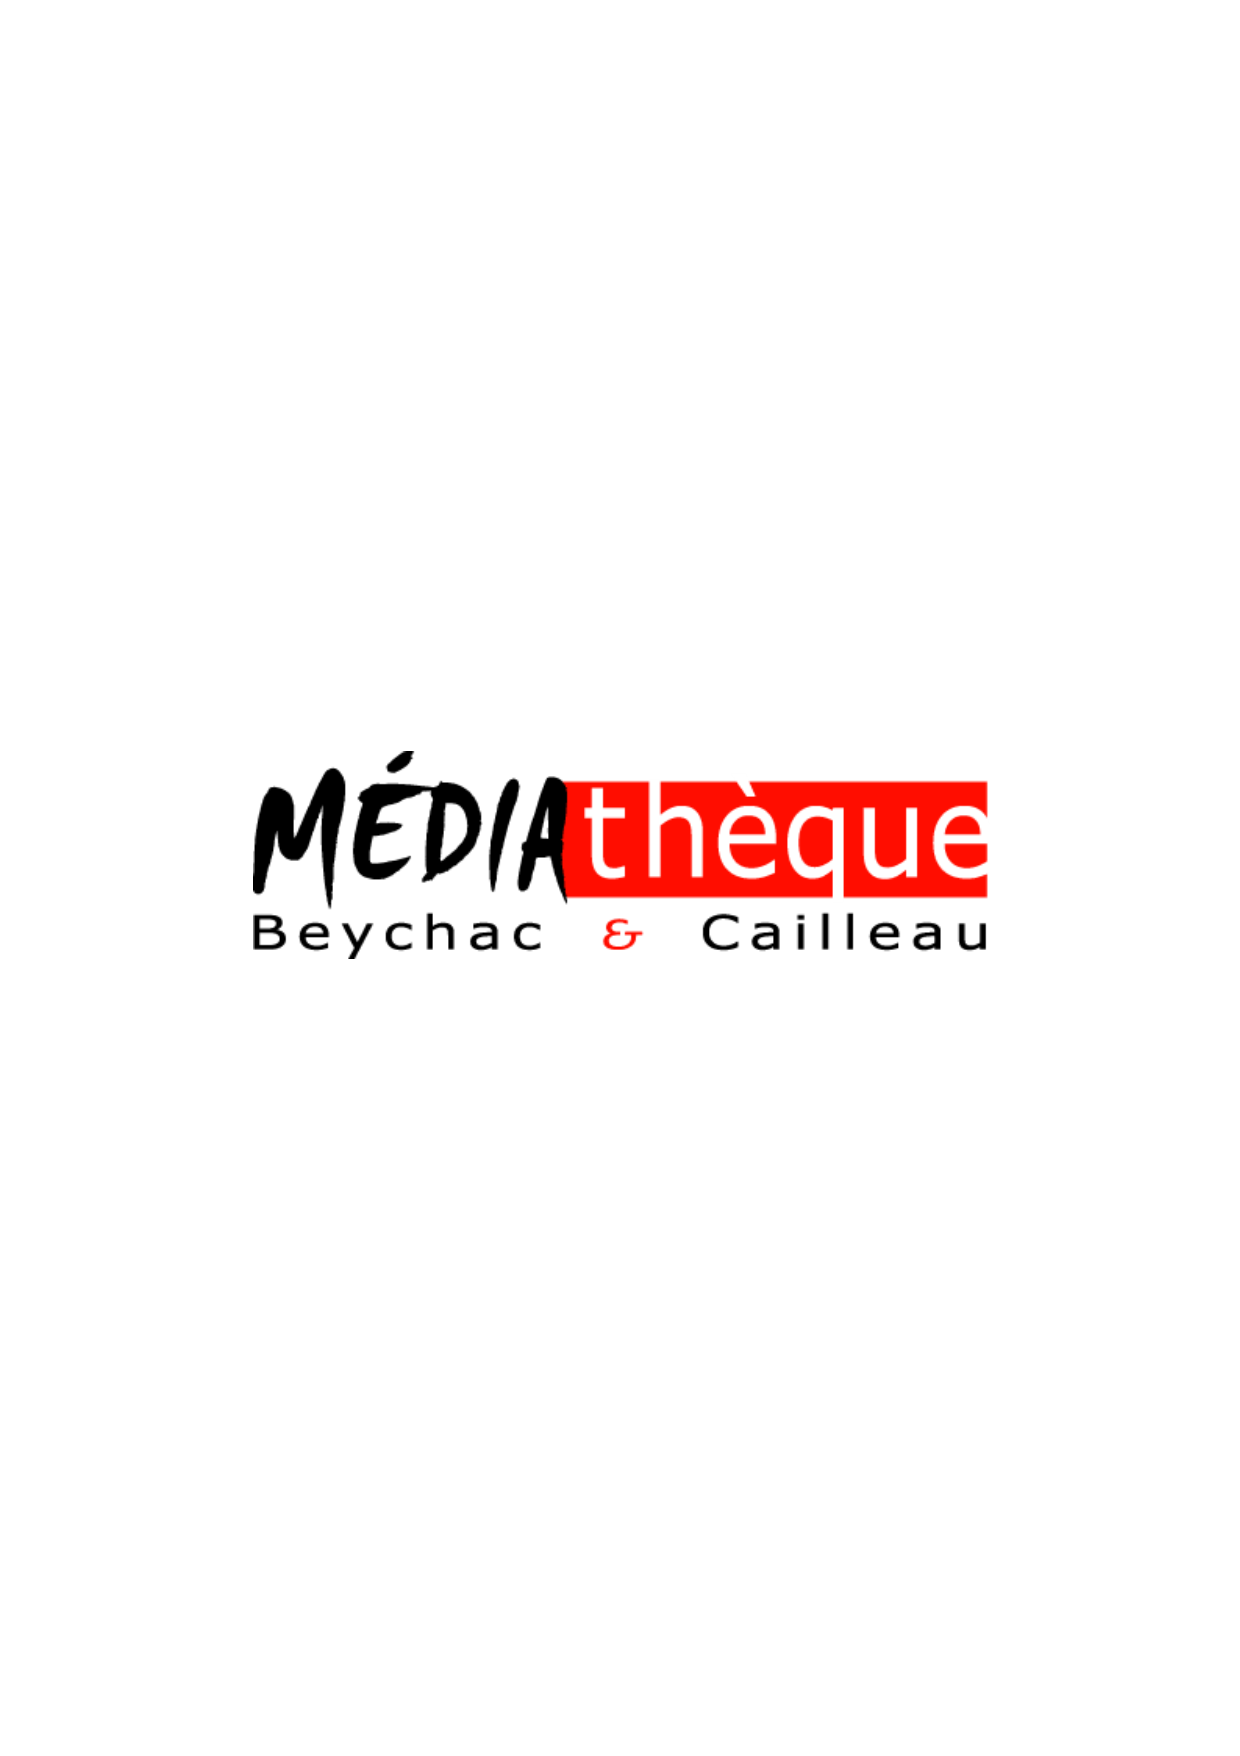 2020.05.14 Mediatheque ouvre